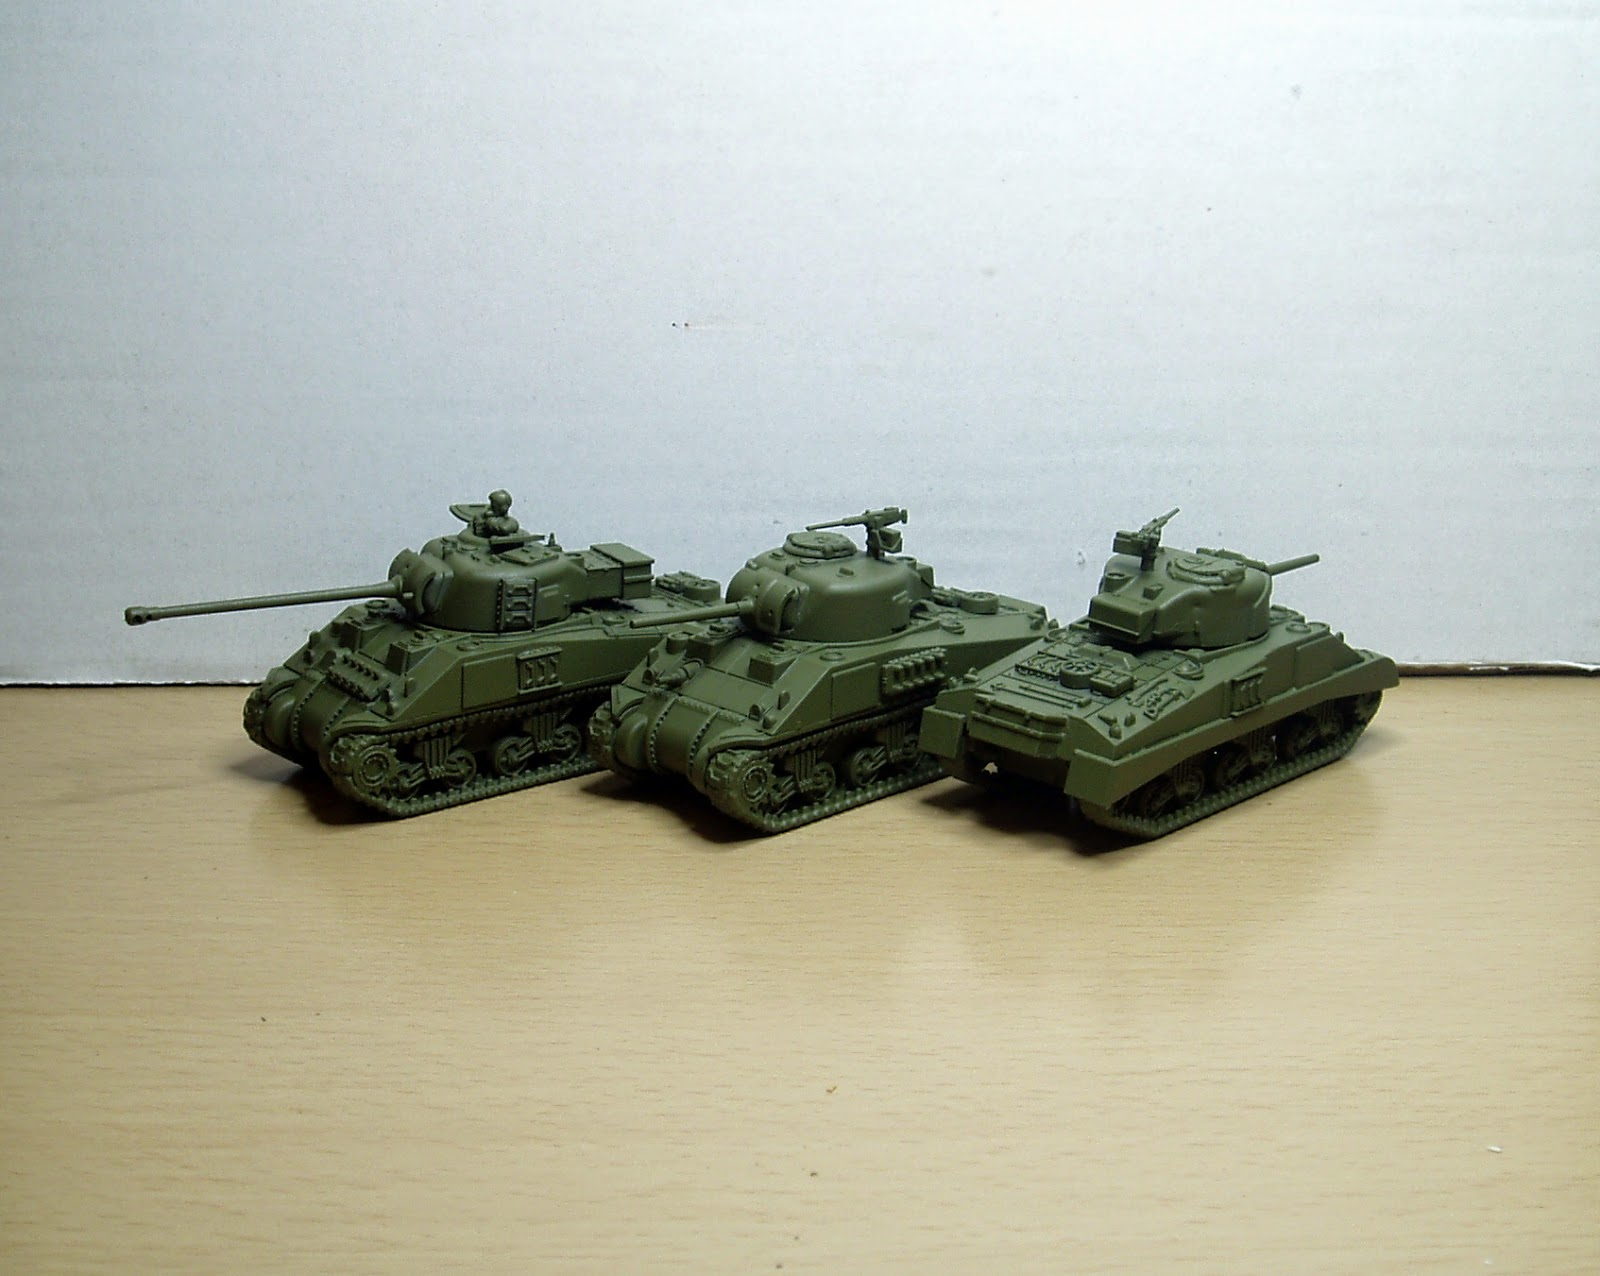 Plastic Soldier Company 1 /72 Scale Sherman Tank – WIP